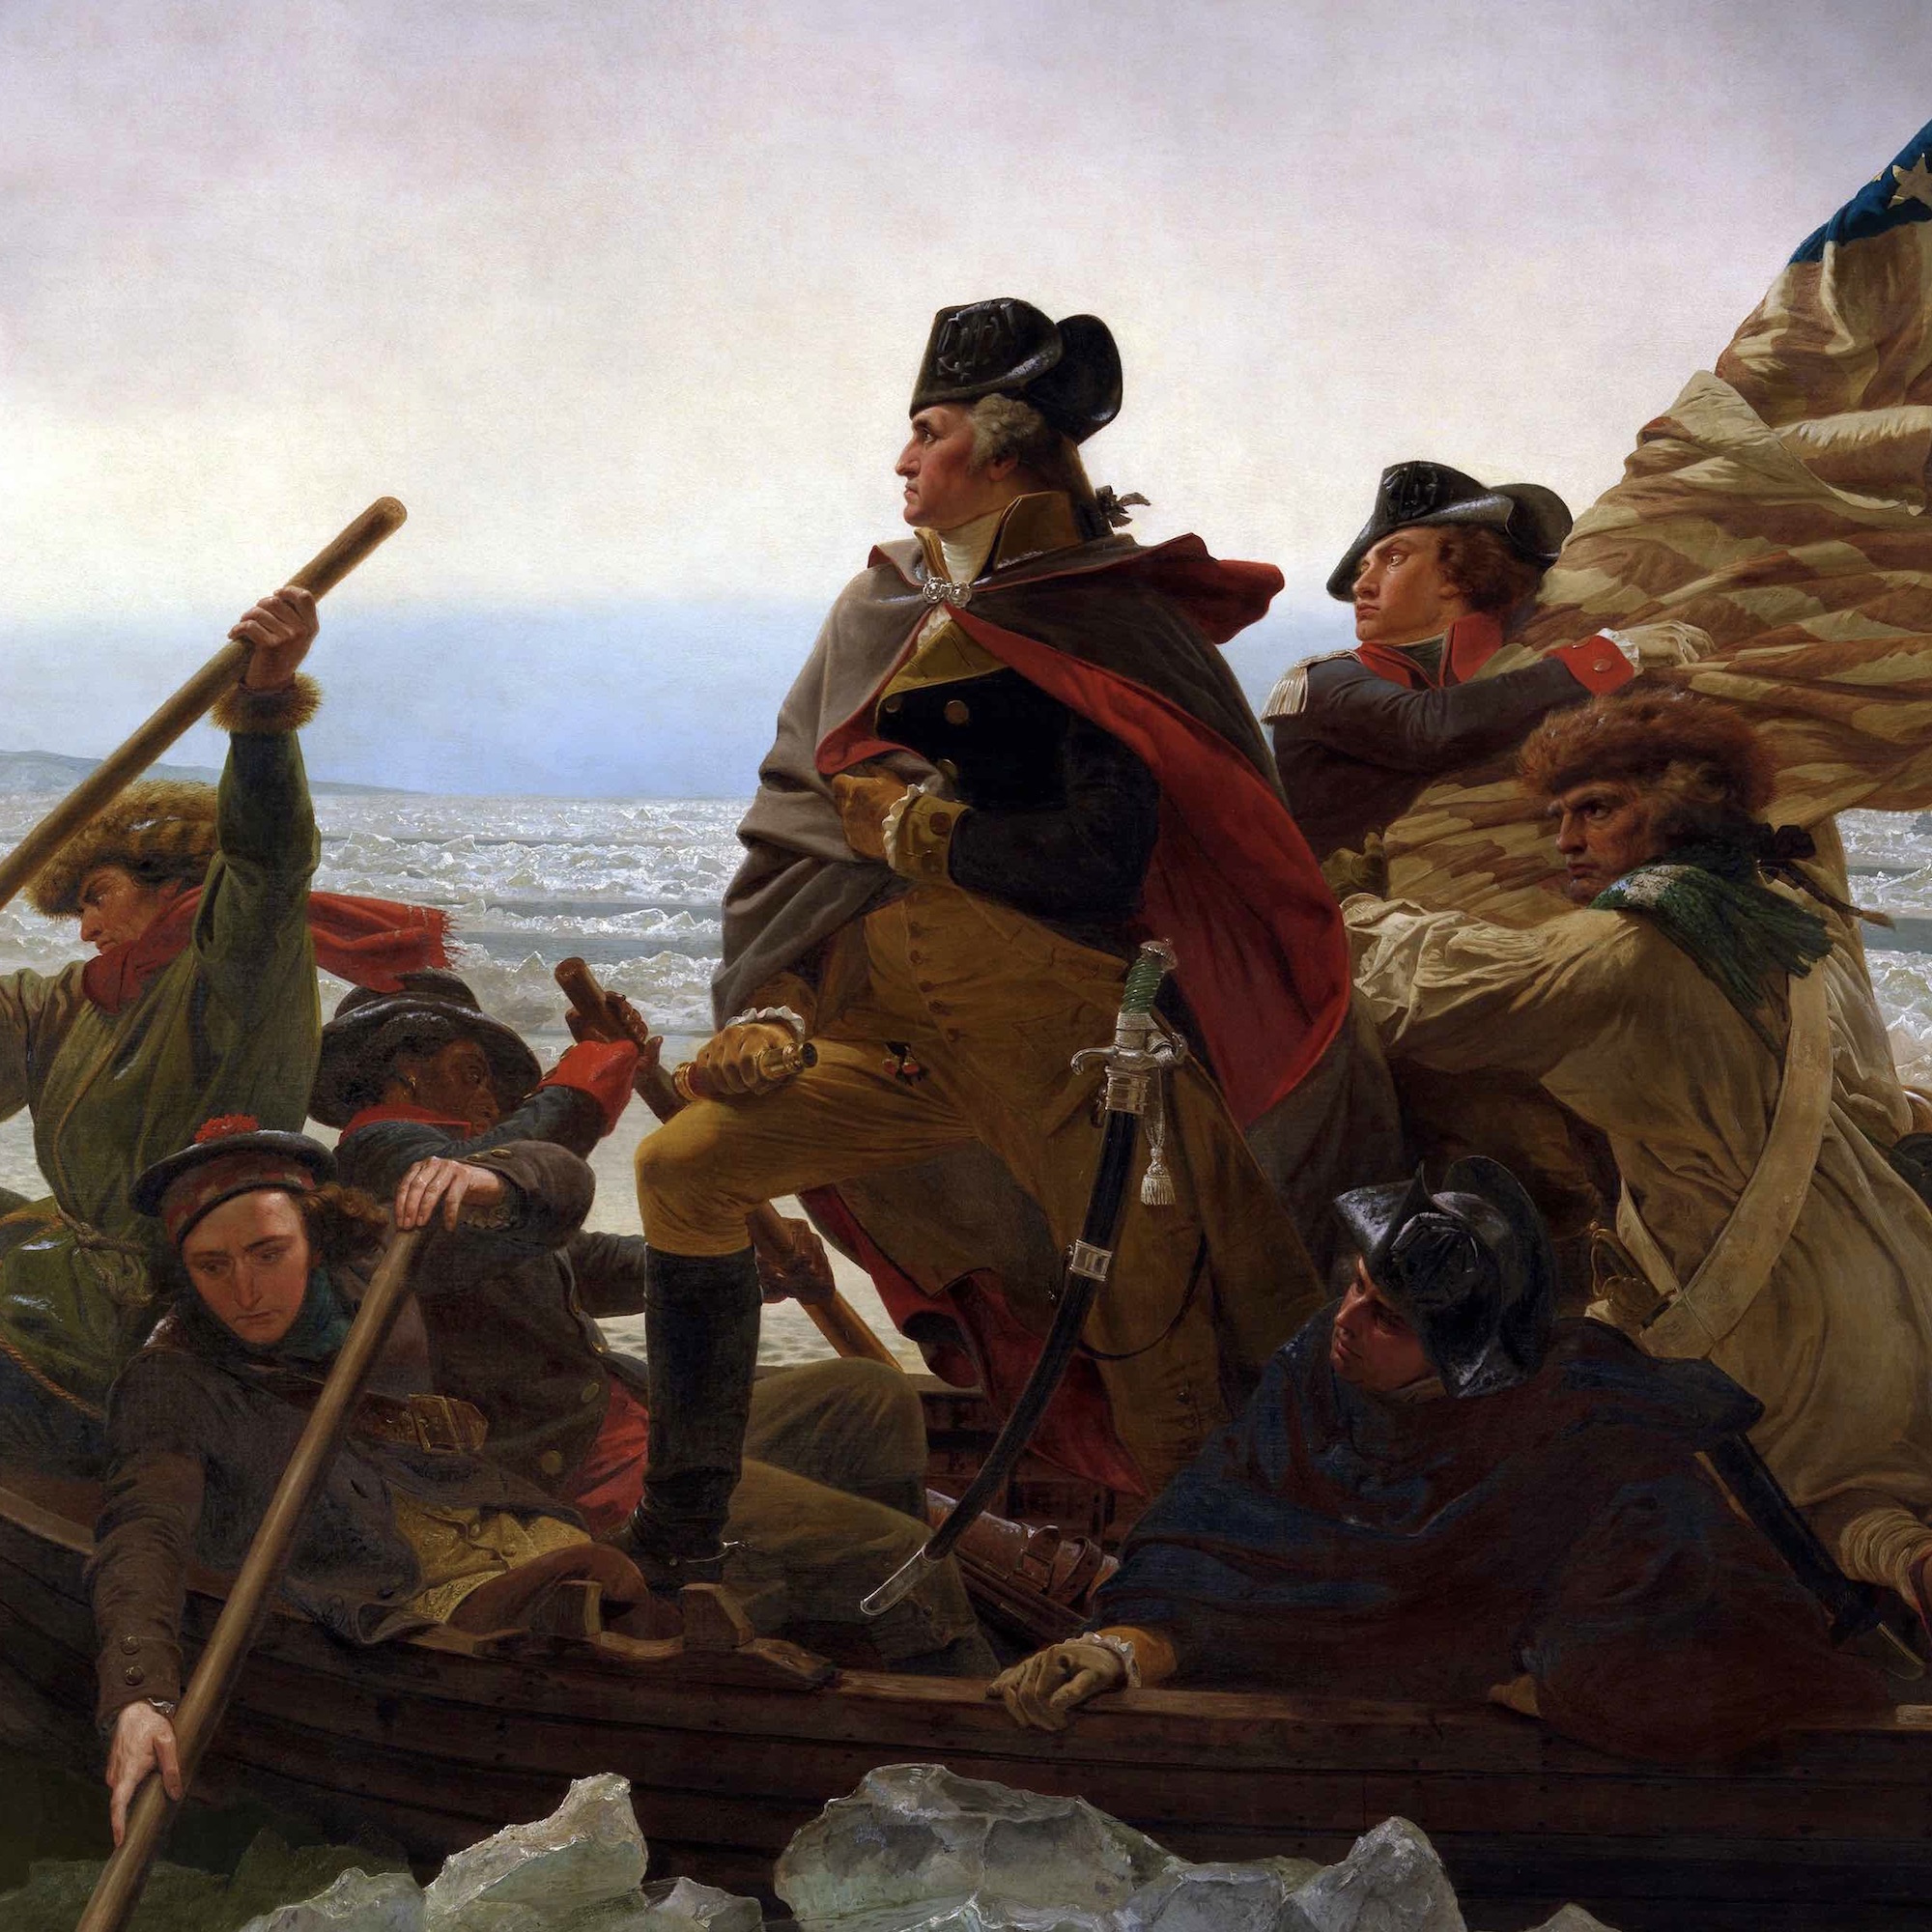 This detail from Washington Crossing the Delaware represents ten great American Revolution paintings among the treasures of the American Revolution.